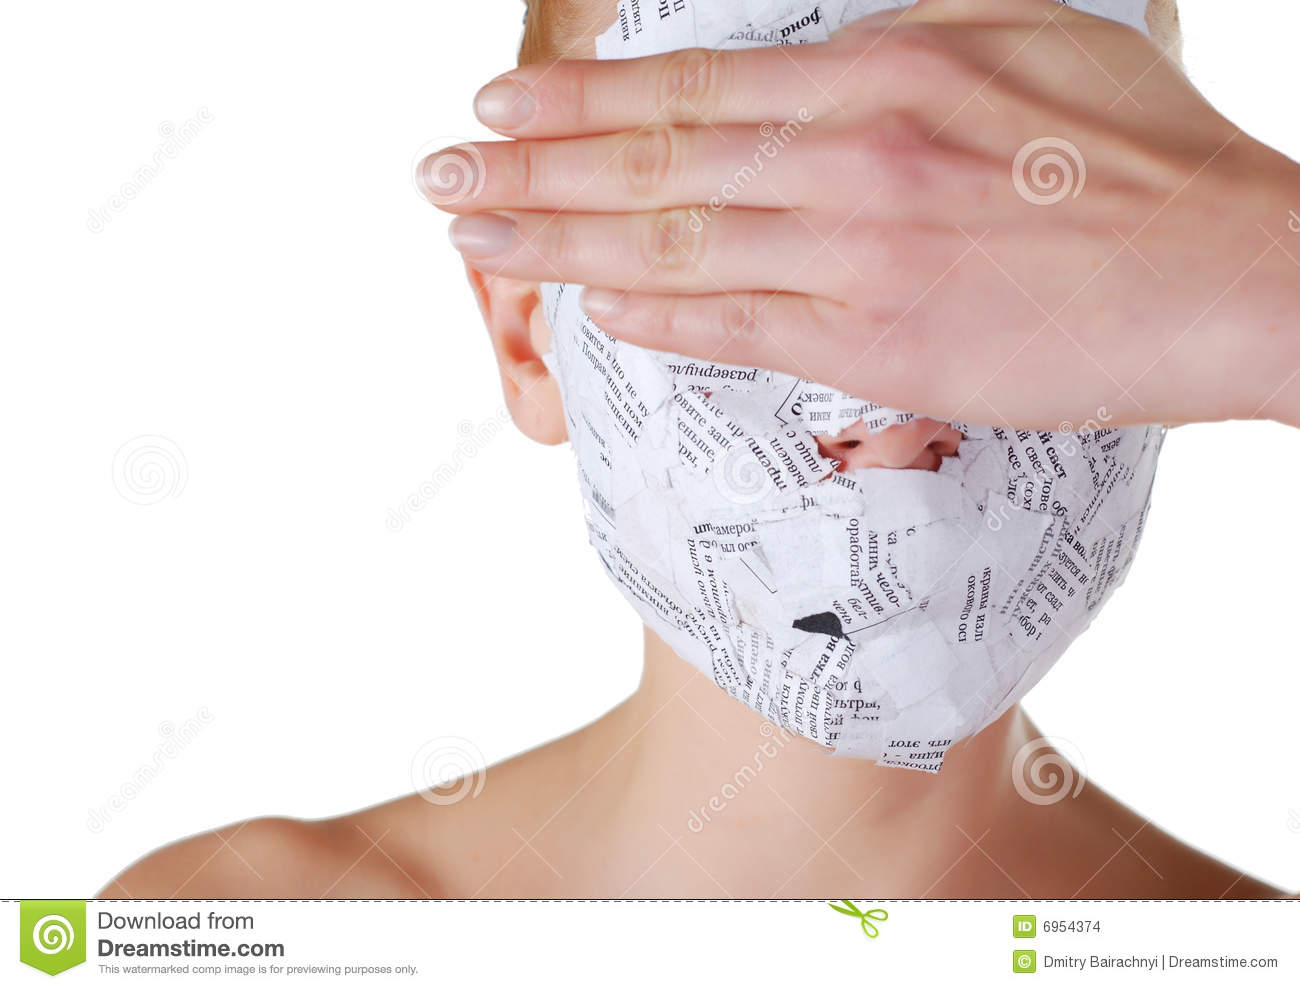 the woman behind the mask essay Free essay: ones unwillingness to acknowledge what they have done wrong is like putting a mask on reality the mask covers up the lies and wrong doings but.